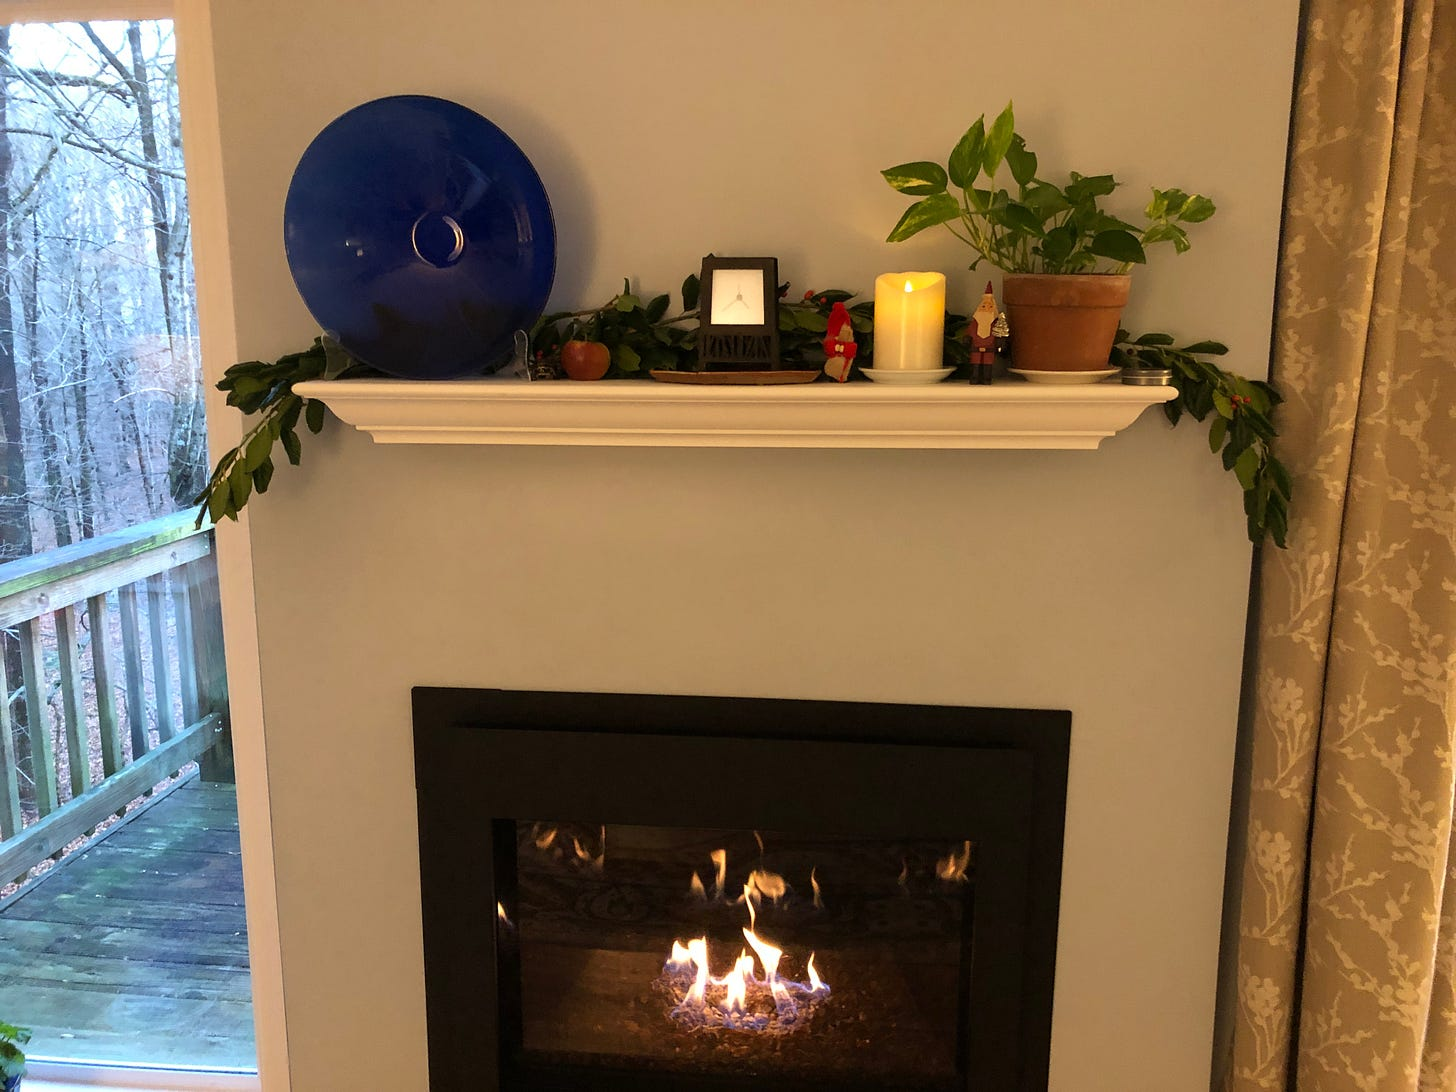 My fireplace mantel, literally decked with holly and Julenisse